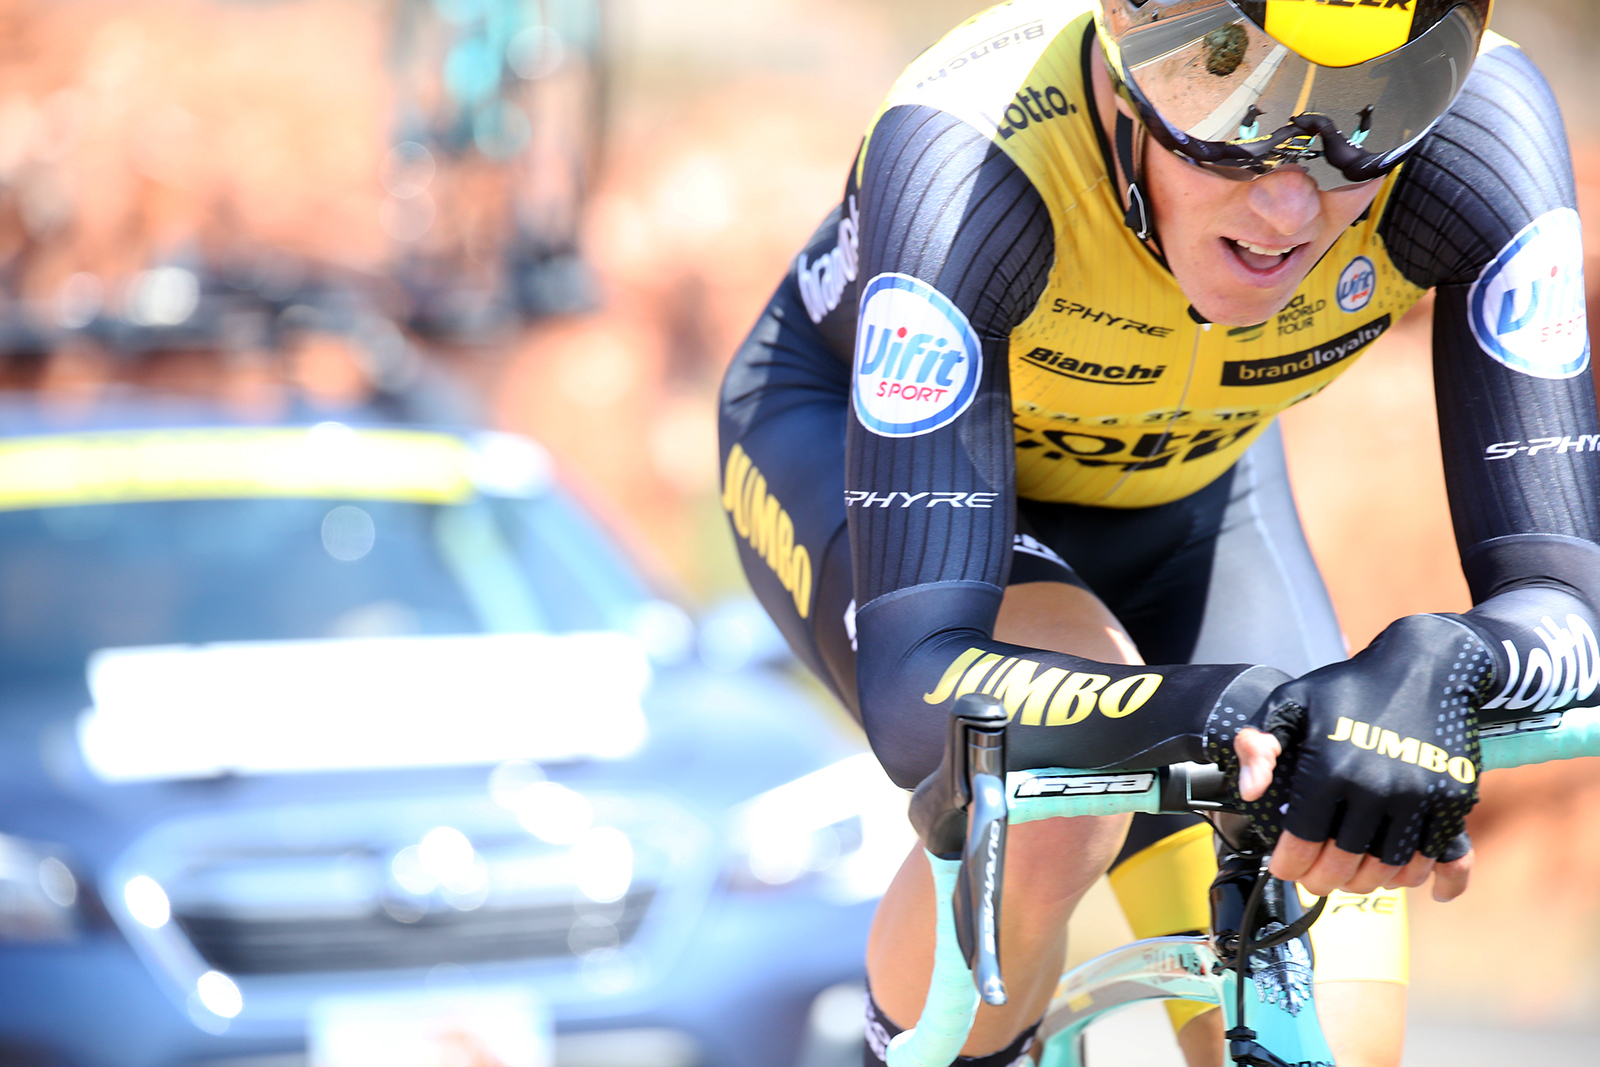 Lotto NL - Jumbo. 2018 Tour of Utah Team Prologue, August 6, 2018, St. George, Utah. Photo by Cathy Fegan-Kim, cottonsoxphotography.net